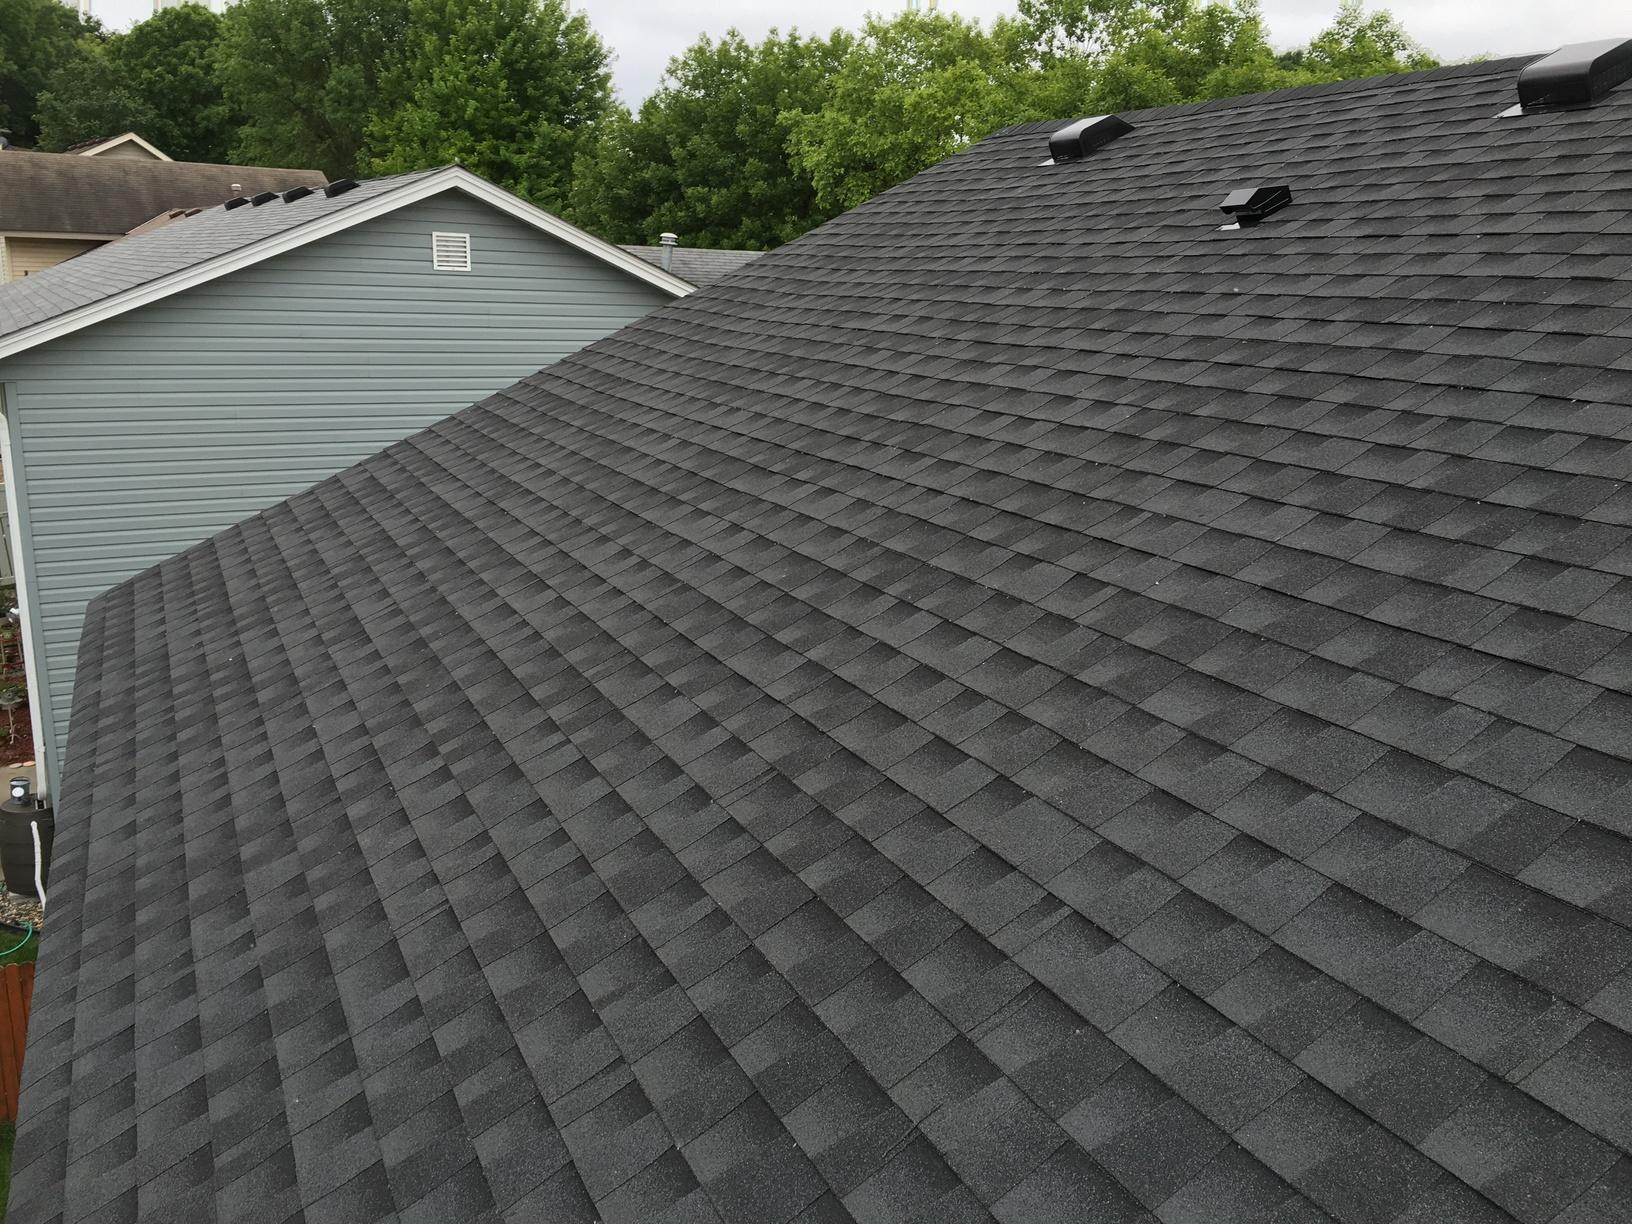 Here is an after photo of the finished roof replacement. GAF Armourshield Timberline shingles in Charcoal Black.